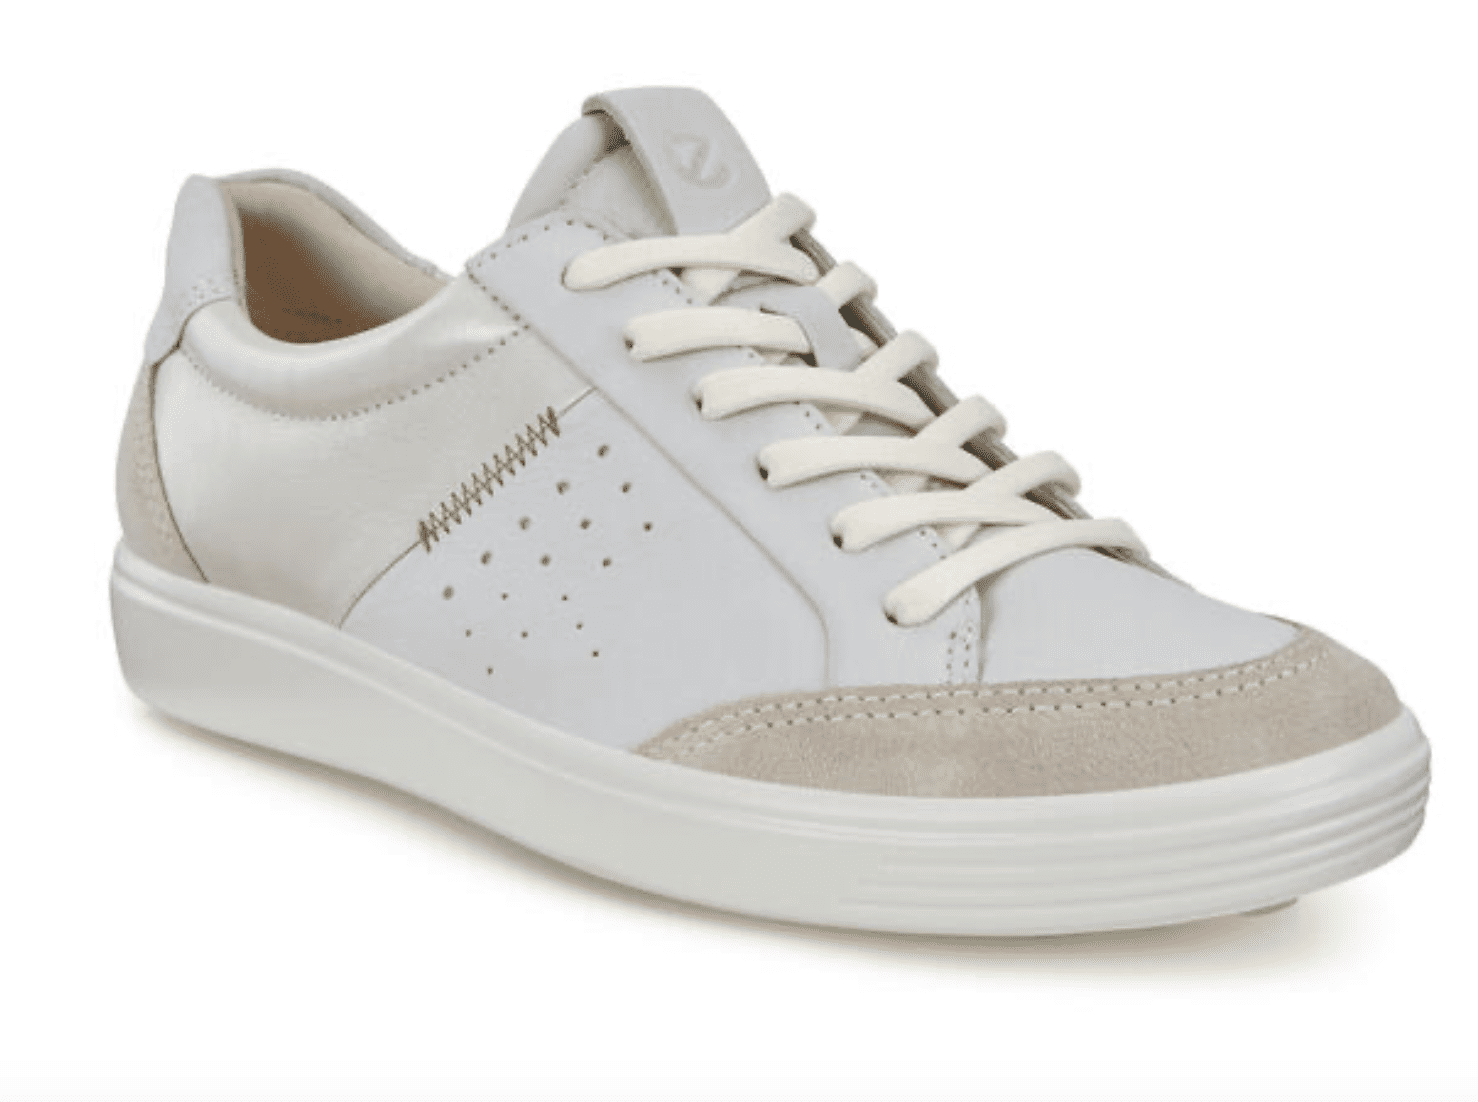 ECCO: Extra 50% off on Causal Styles Shoes